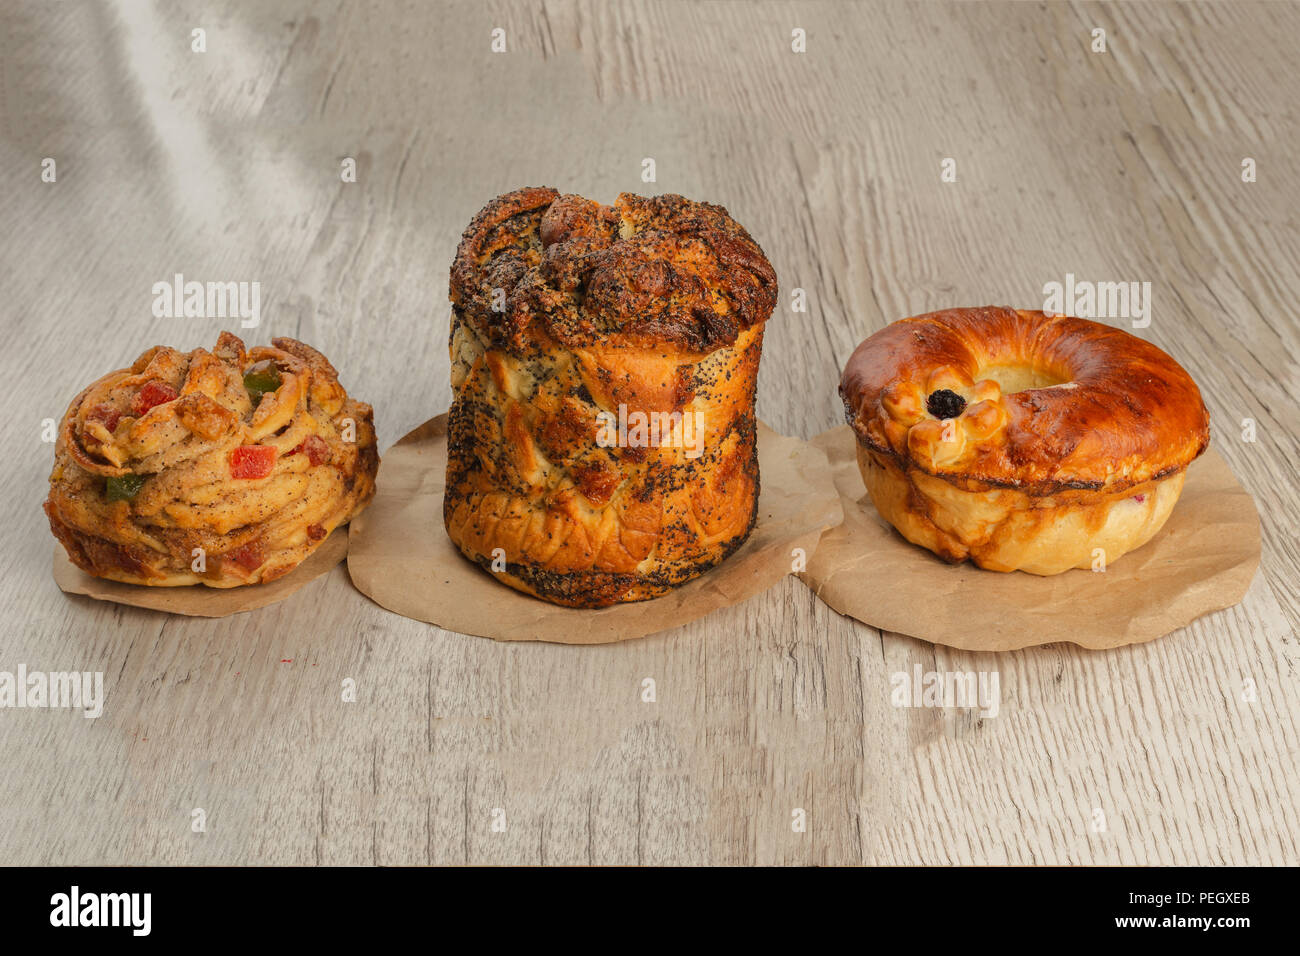 Three different pies on a wooden background. Stock Photo